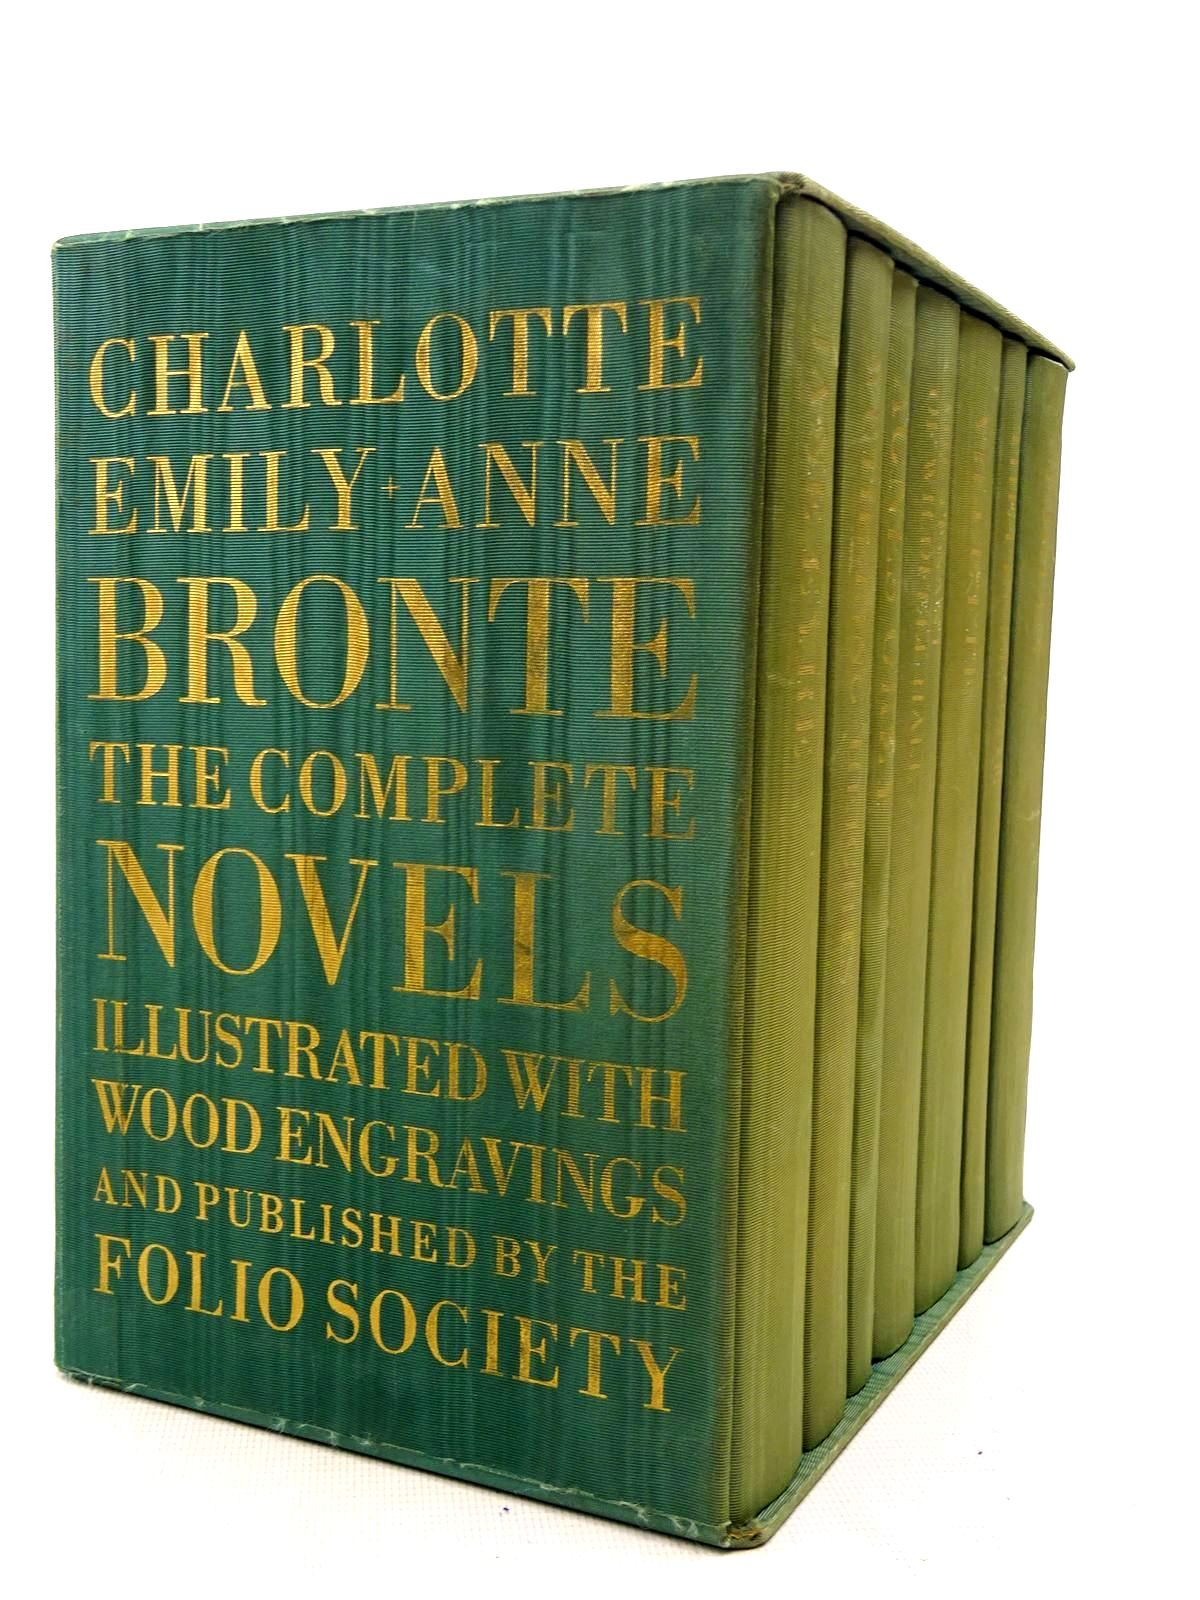 Photo of CHARLOTTE, EMILY & ANNE BRONTE THE COMPLETE NOVELS (7 VOLUMES) written by Bronte, Charlotte<br />Bronte, Emily<br />Bronte, Anne illustrated by Forster, Peter<br />Brockway, Harry<br />Stephens, Ian<br />et al.,  published by Folio Society (STOCK CODE: 2126070)  for sale by Stella & Rose's Books